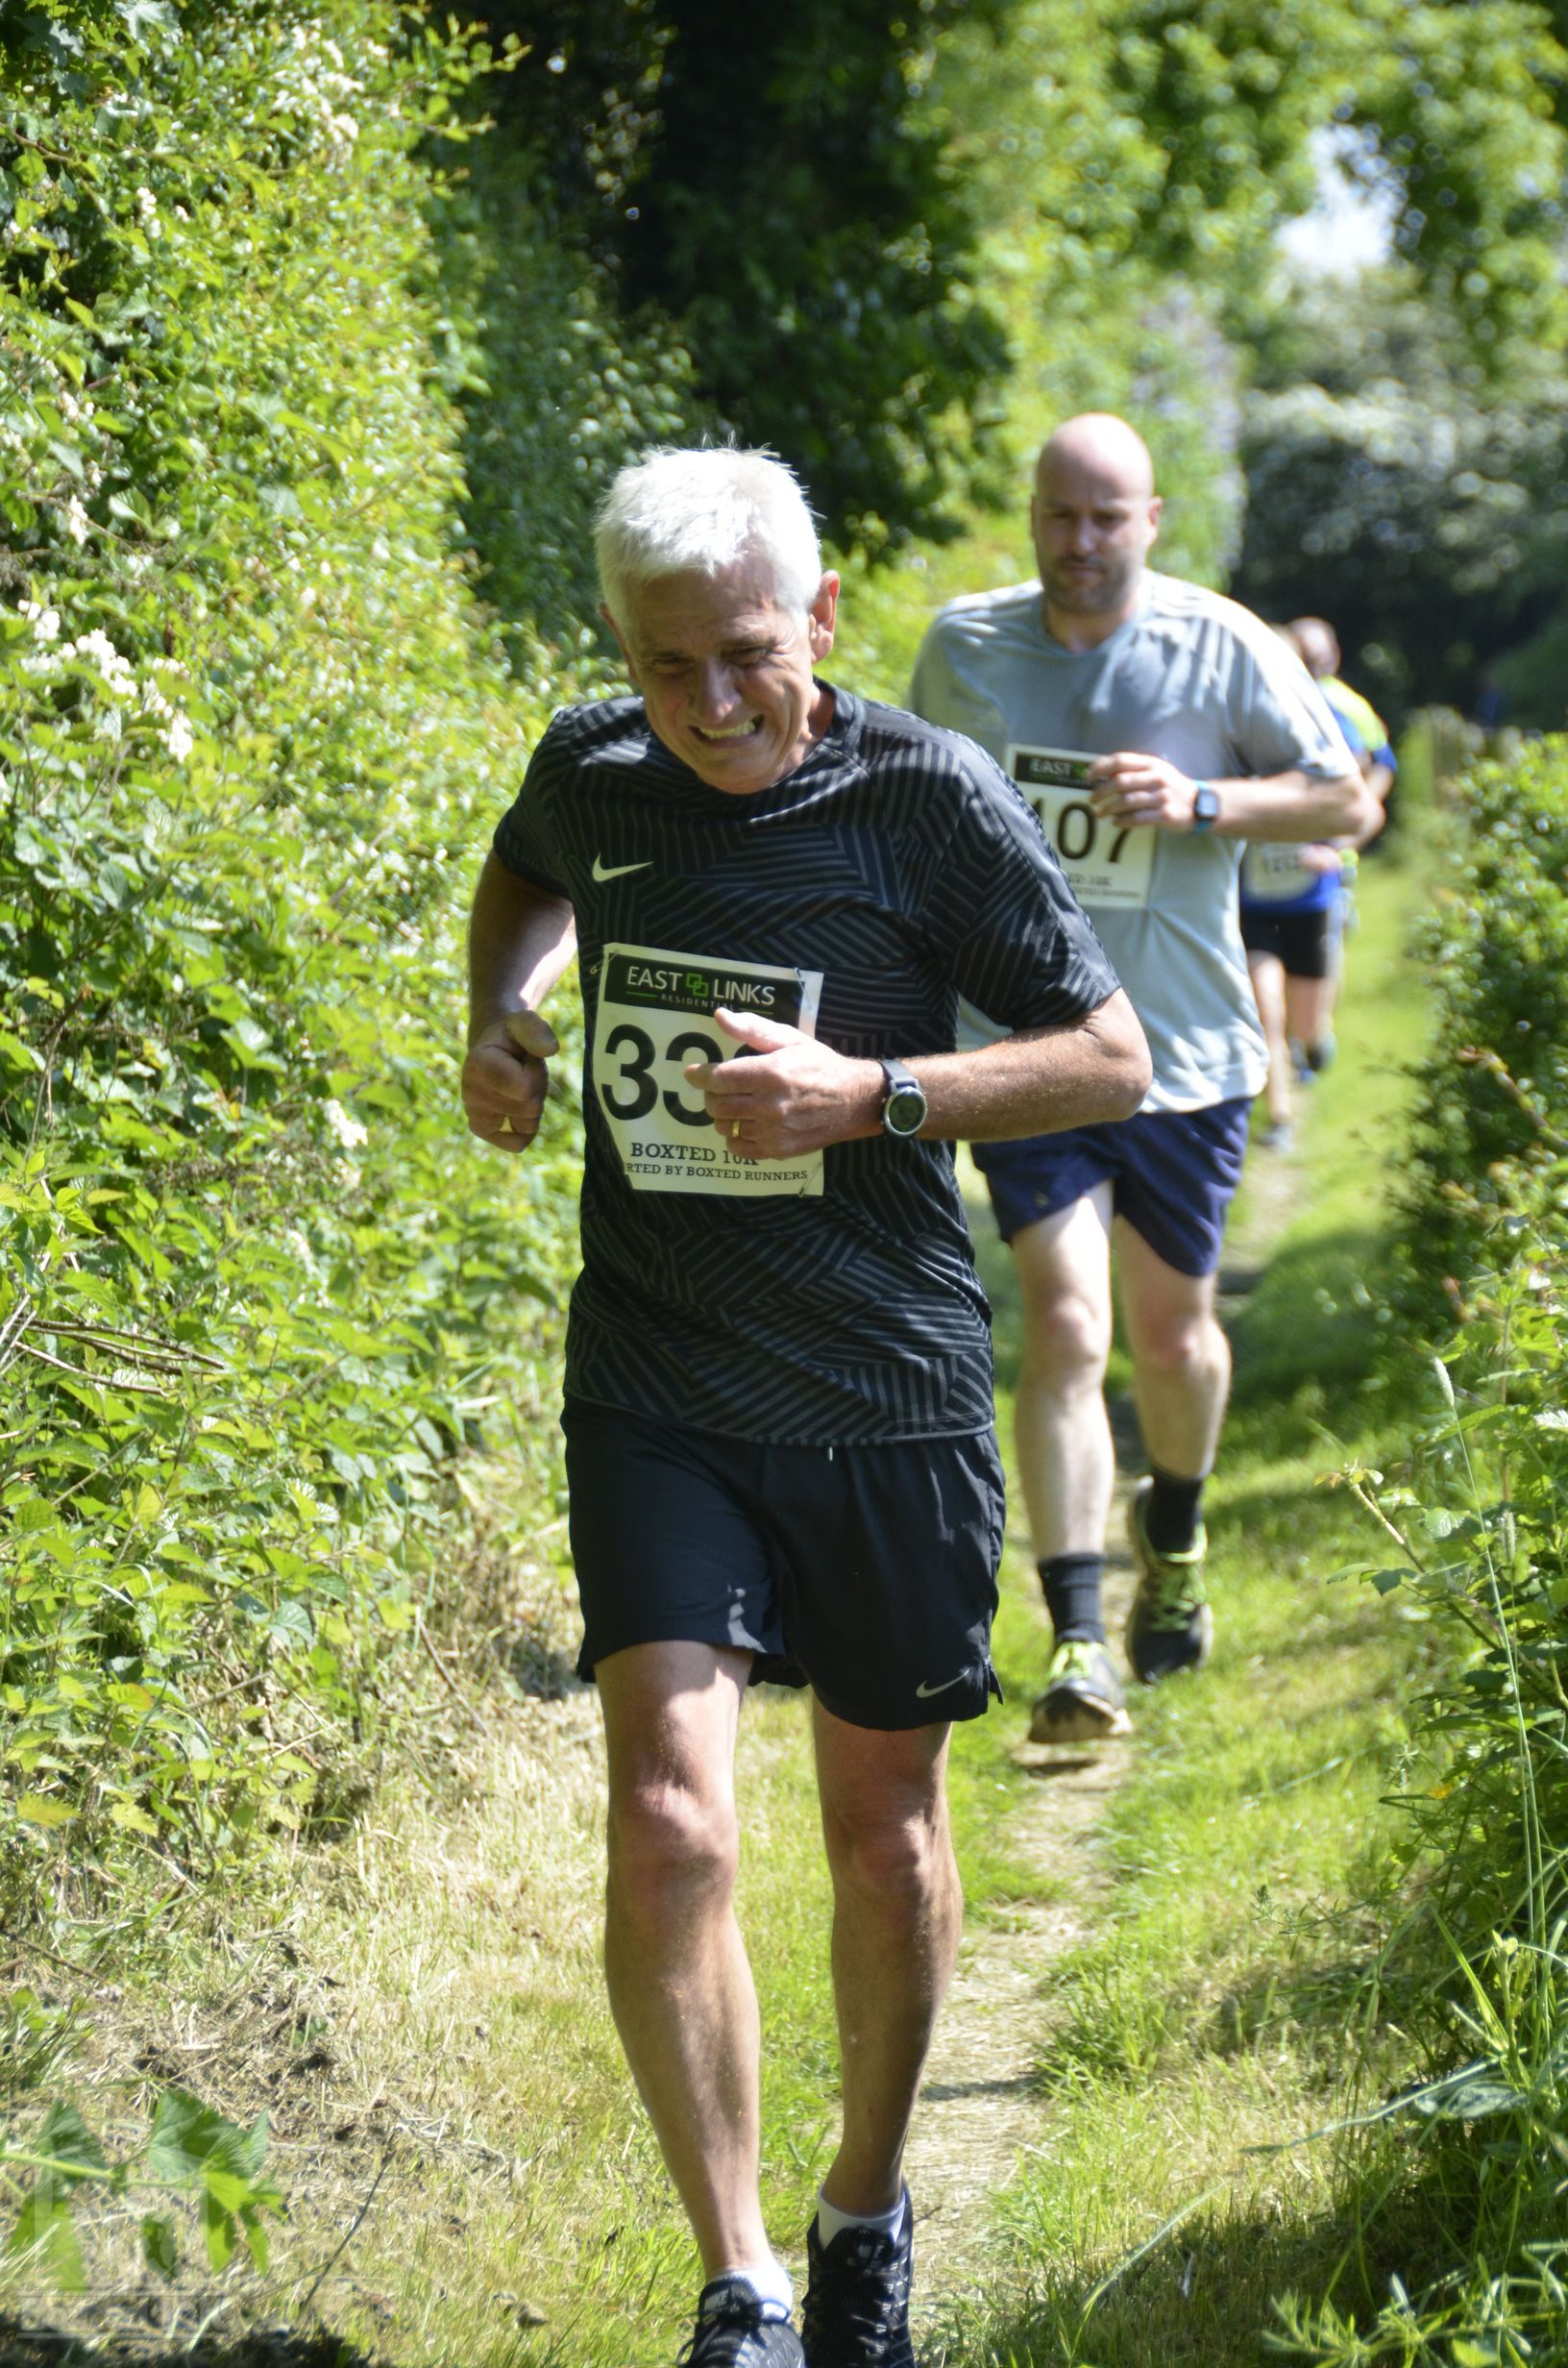 Boxted10k-00223